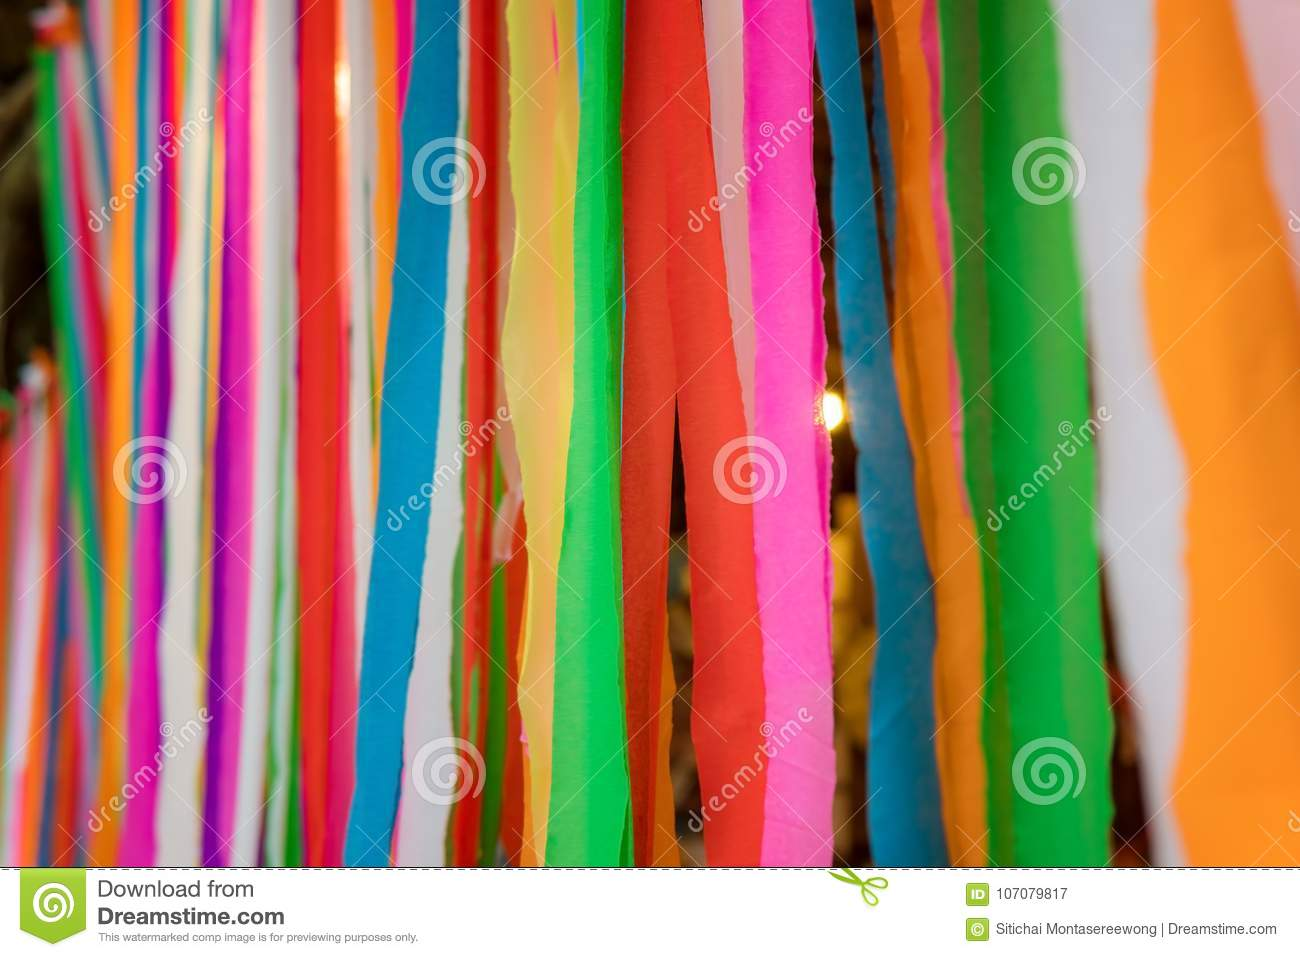 Line of colorful fabric and look beautiful.